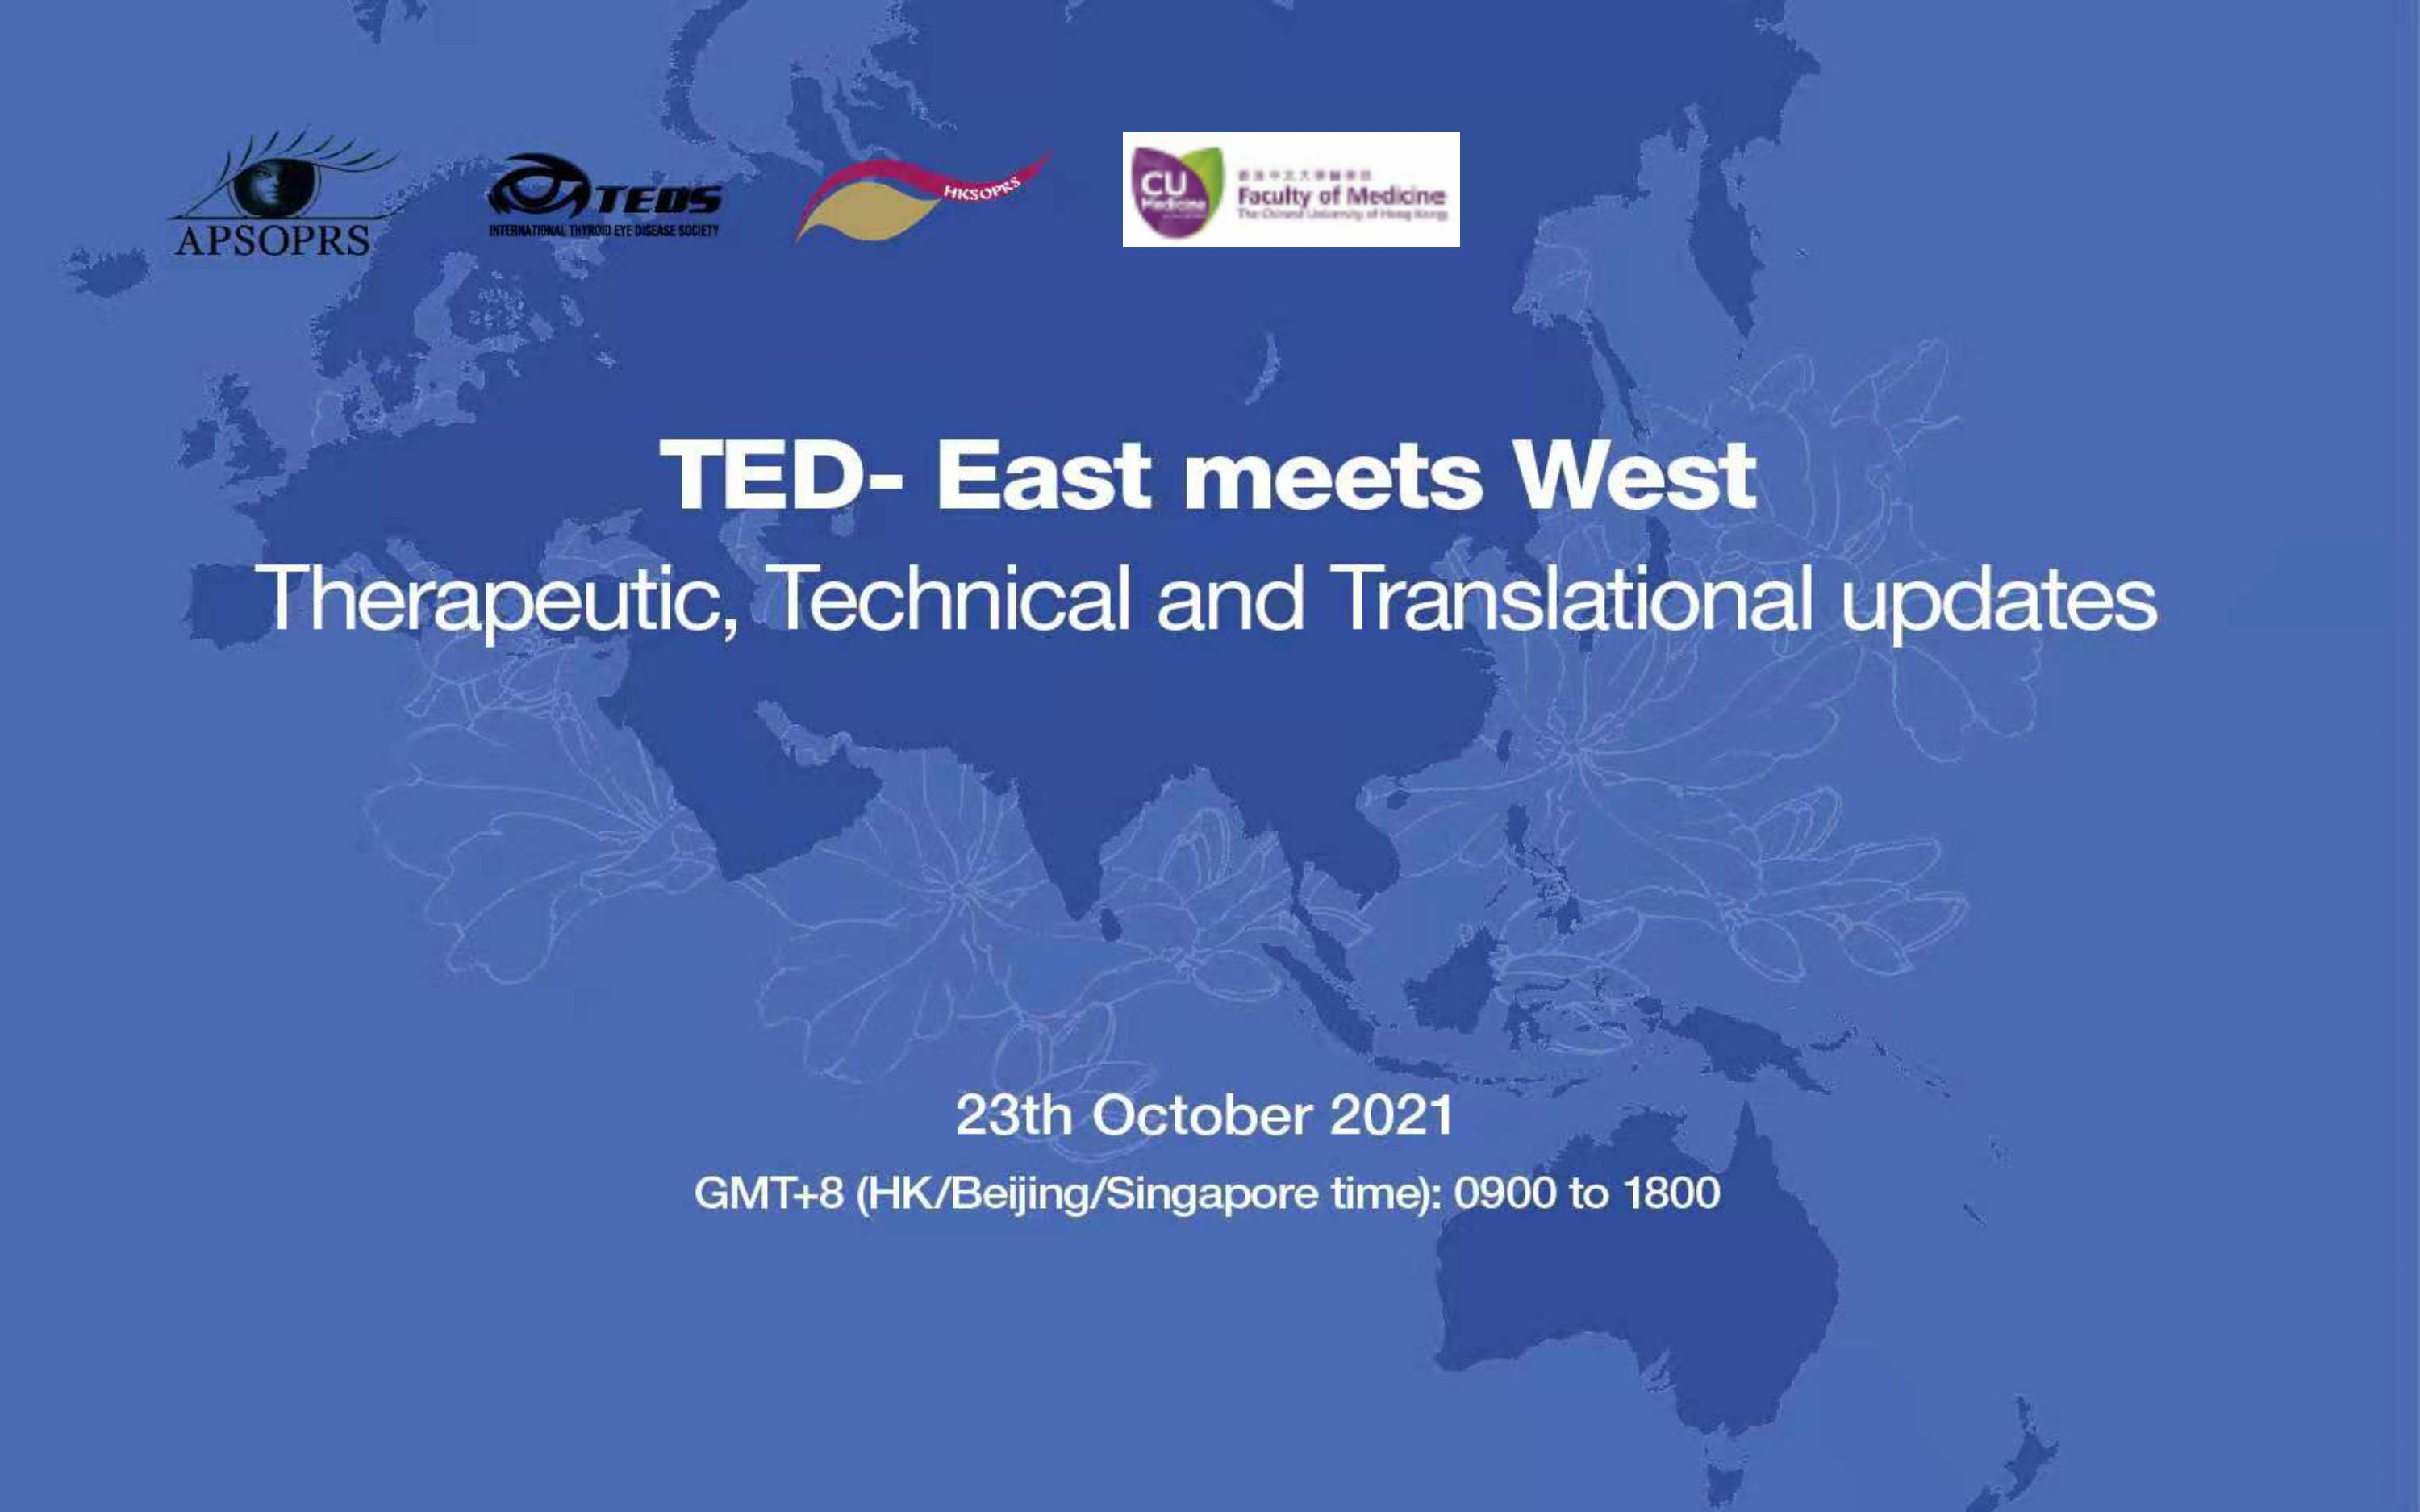 TED -East meets West : Therapeutic, Technical and Translation updates